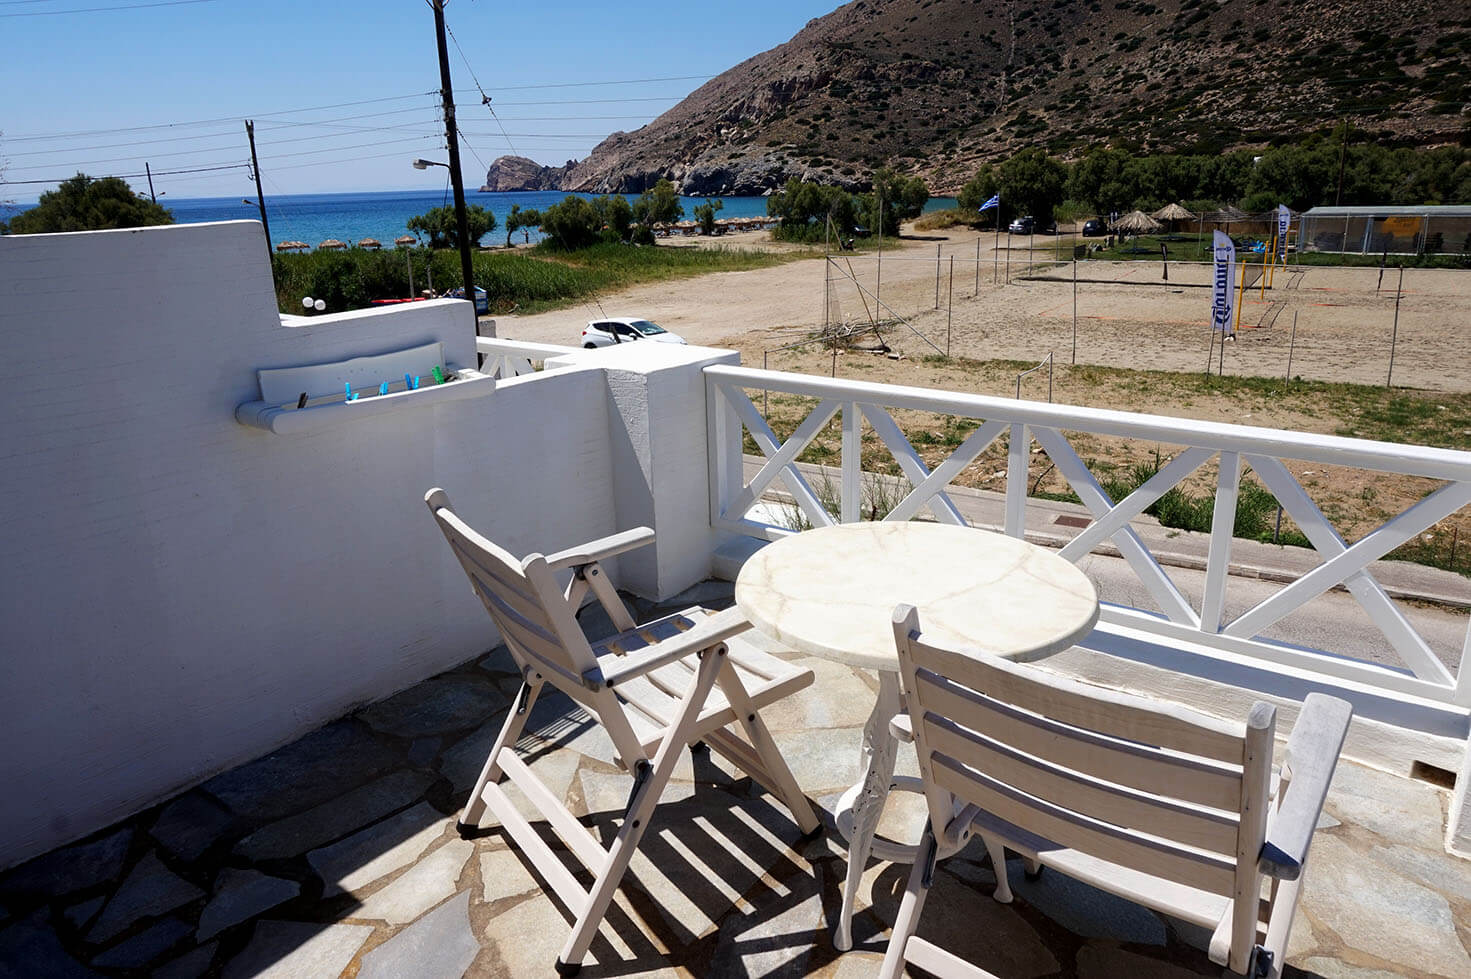 Best hotels in Syros, Greece